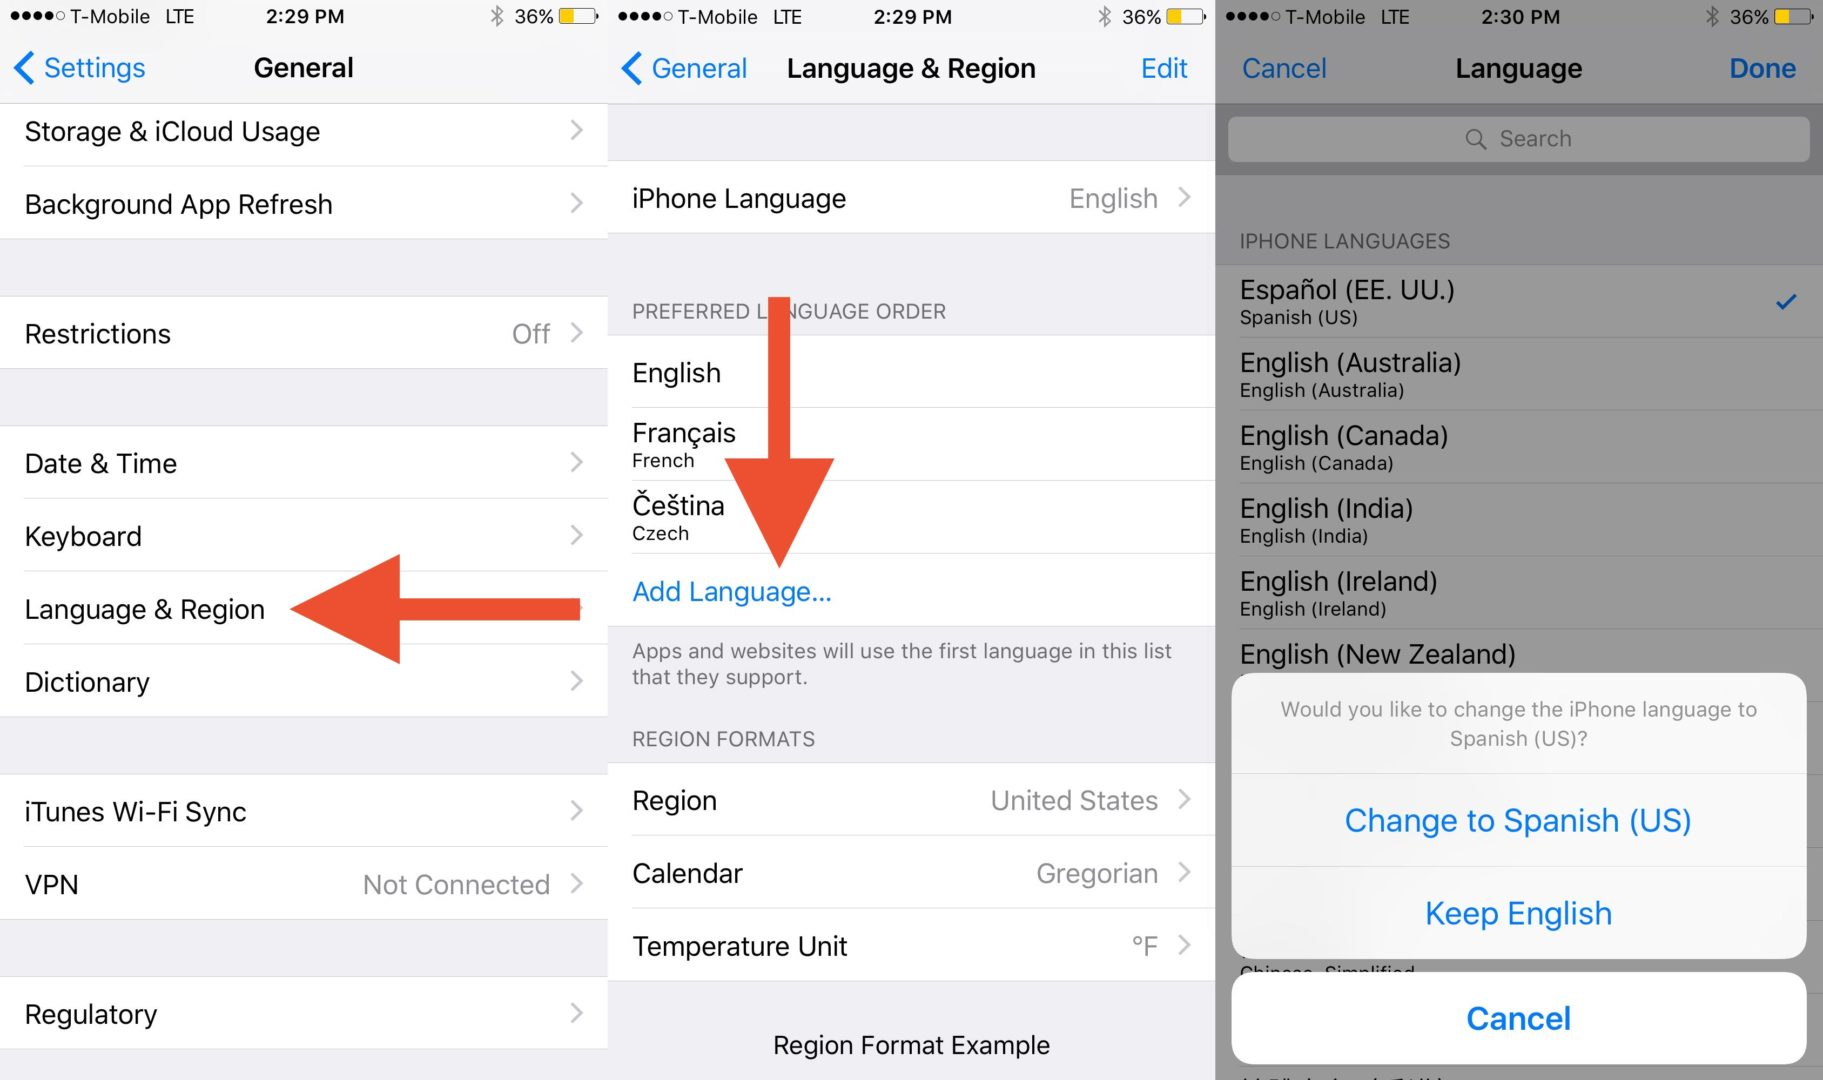 Adding additional languages to an iPhone